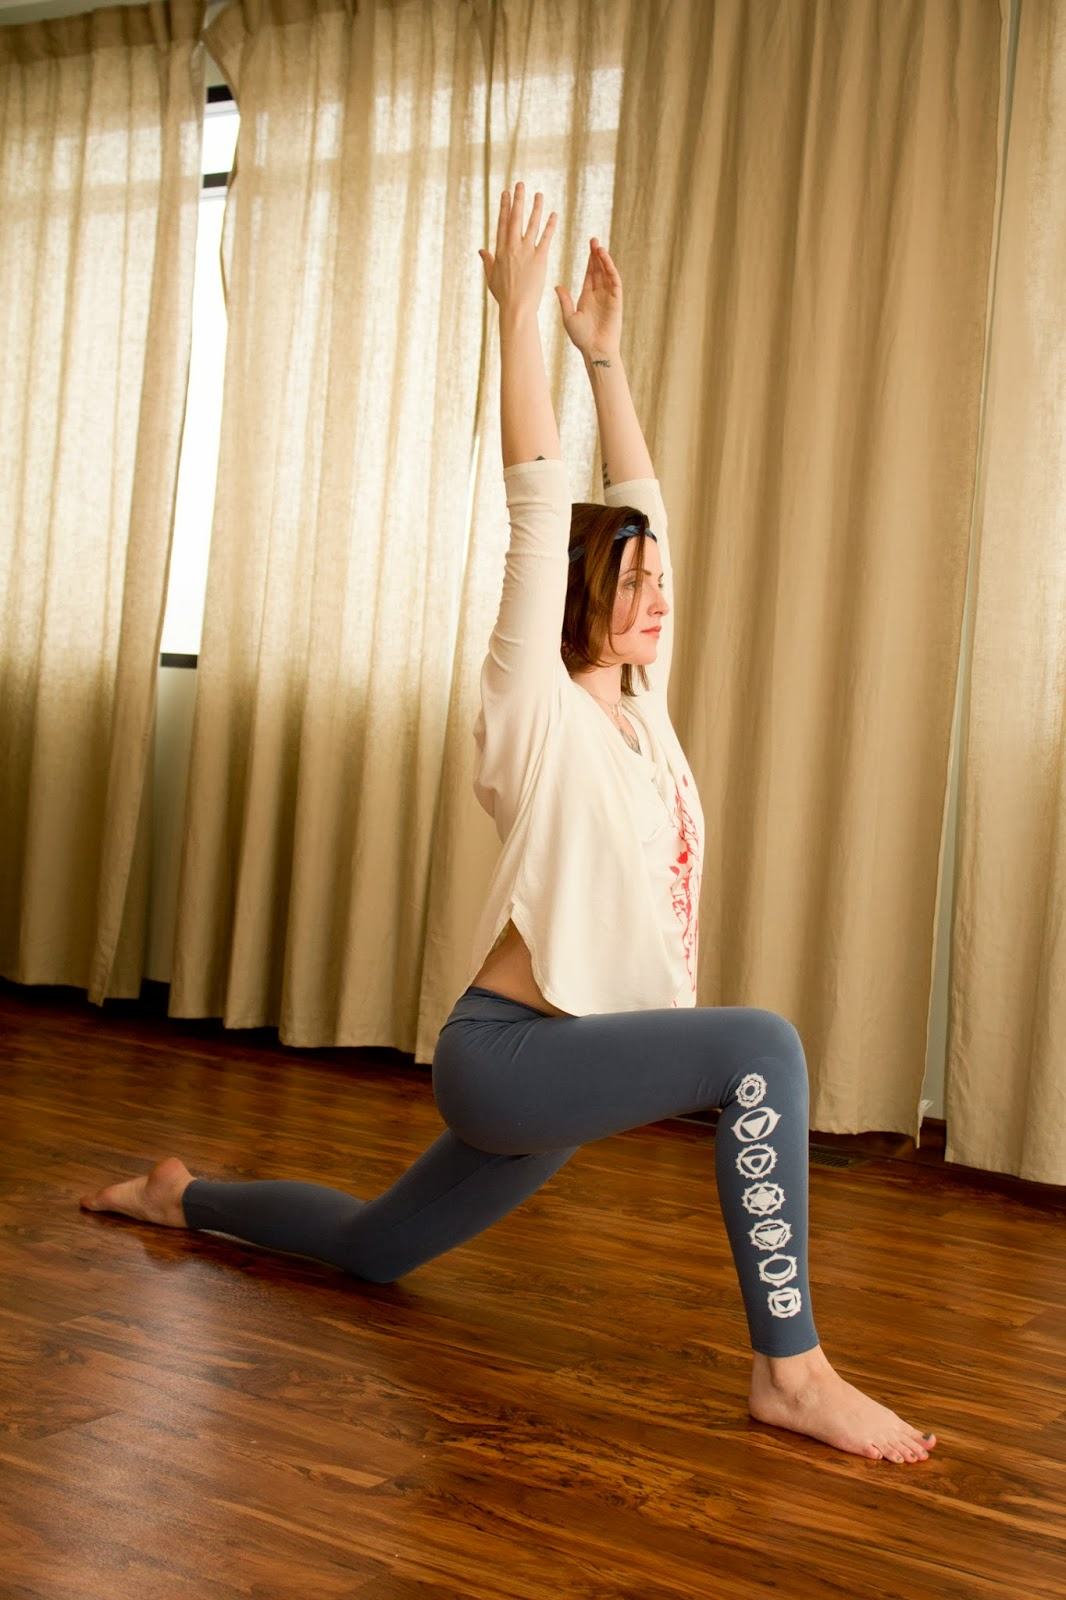 yoga+off+the+mat - Recognizing Yoga Off the Mat